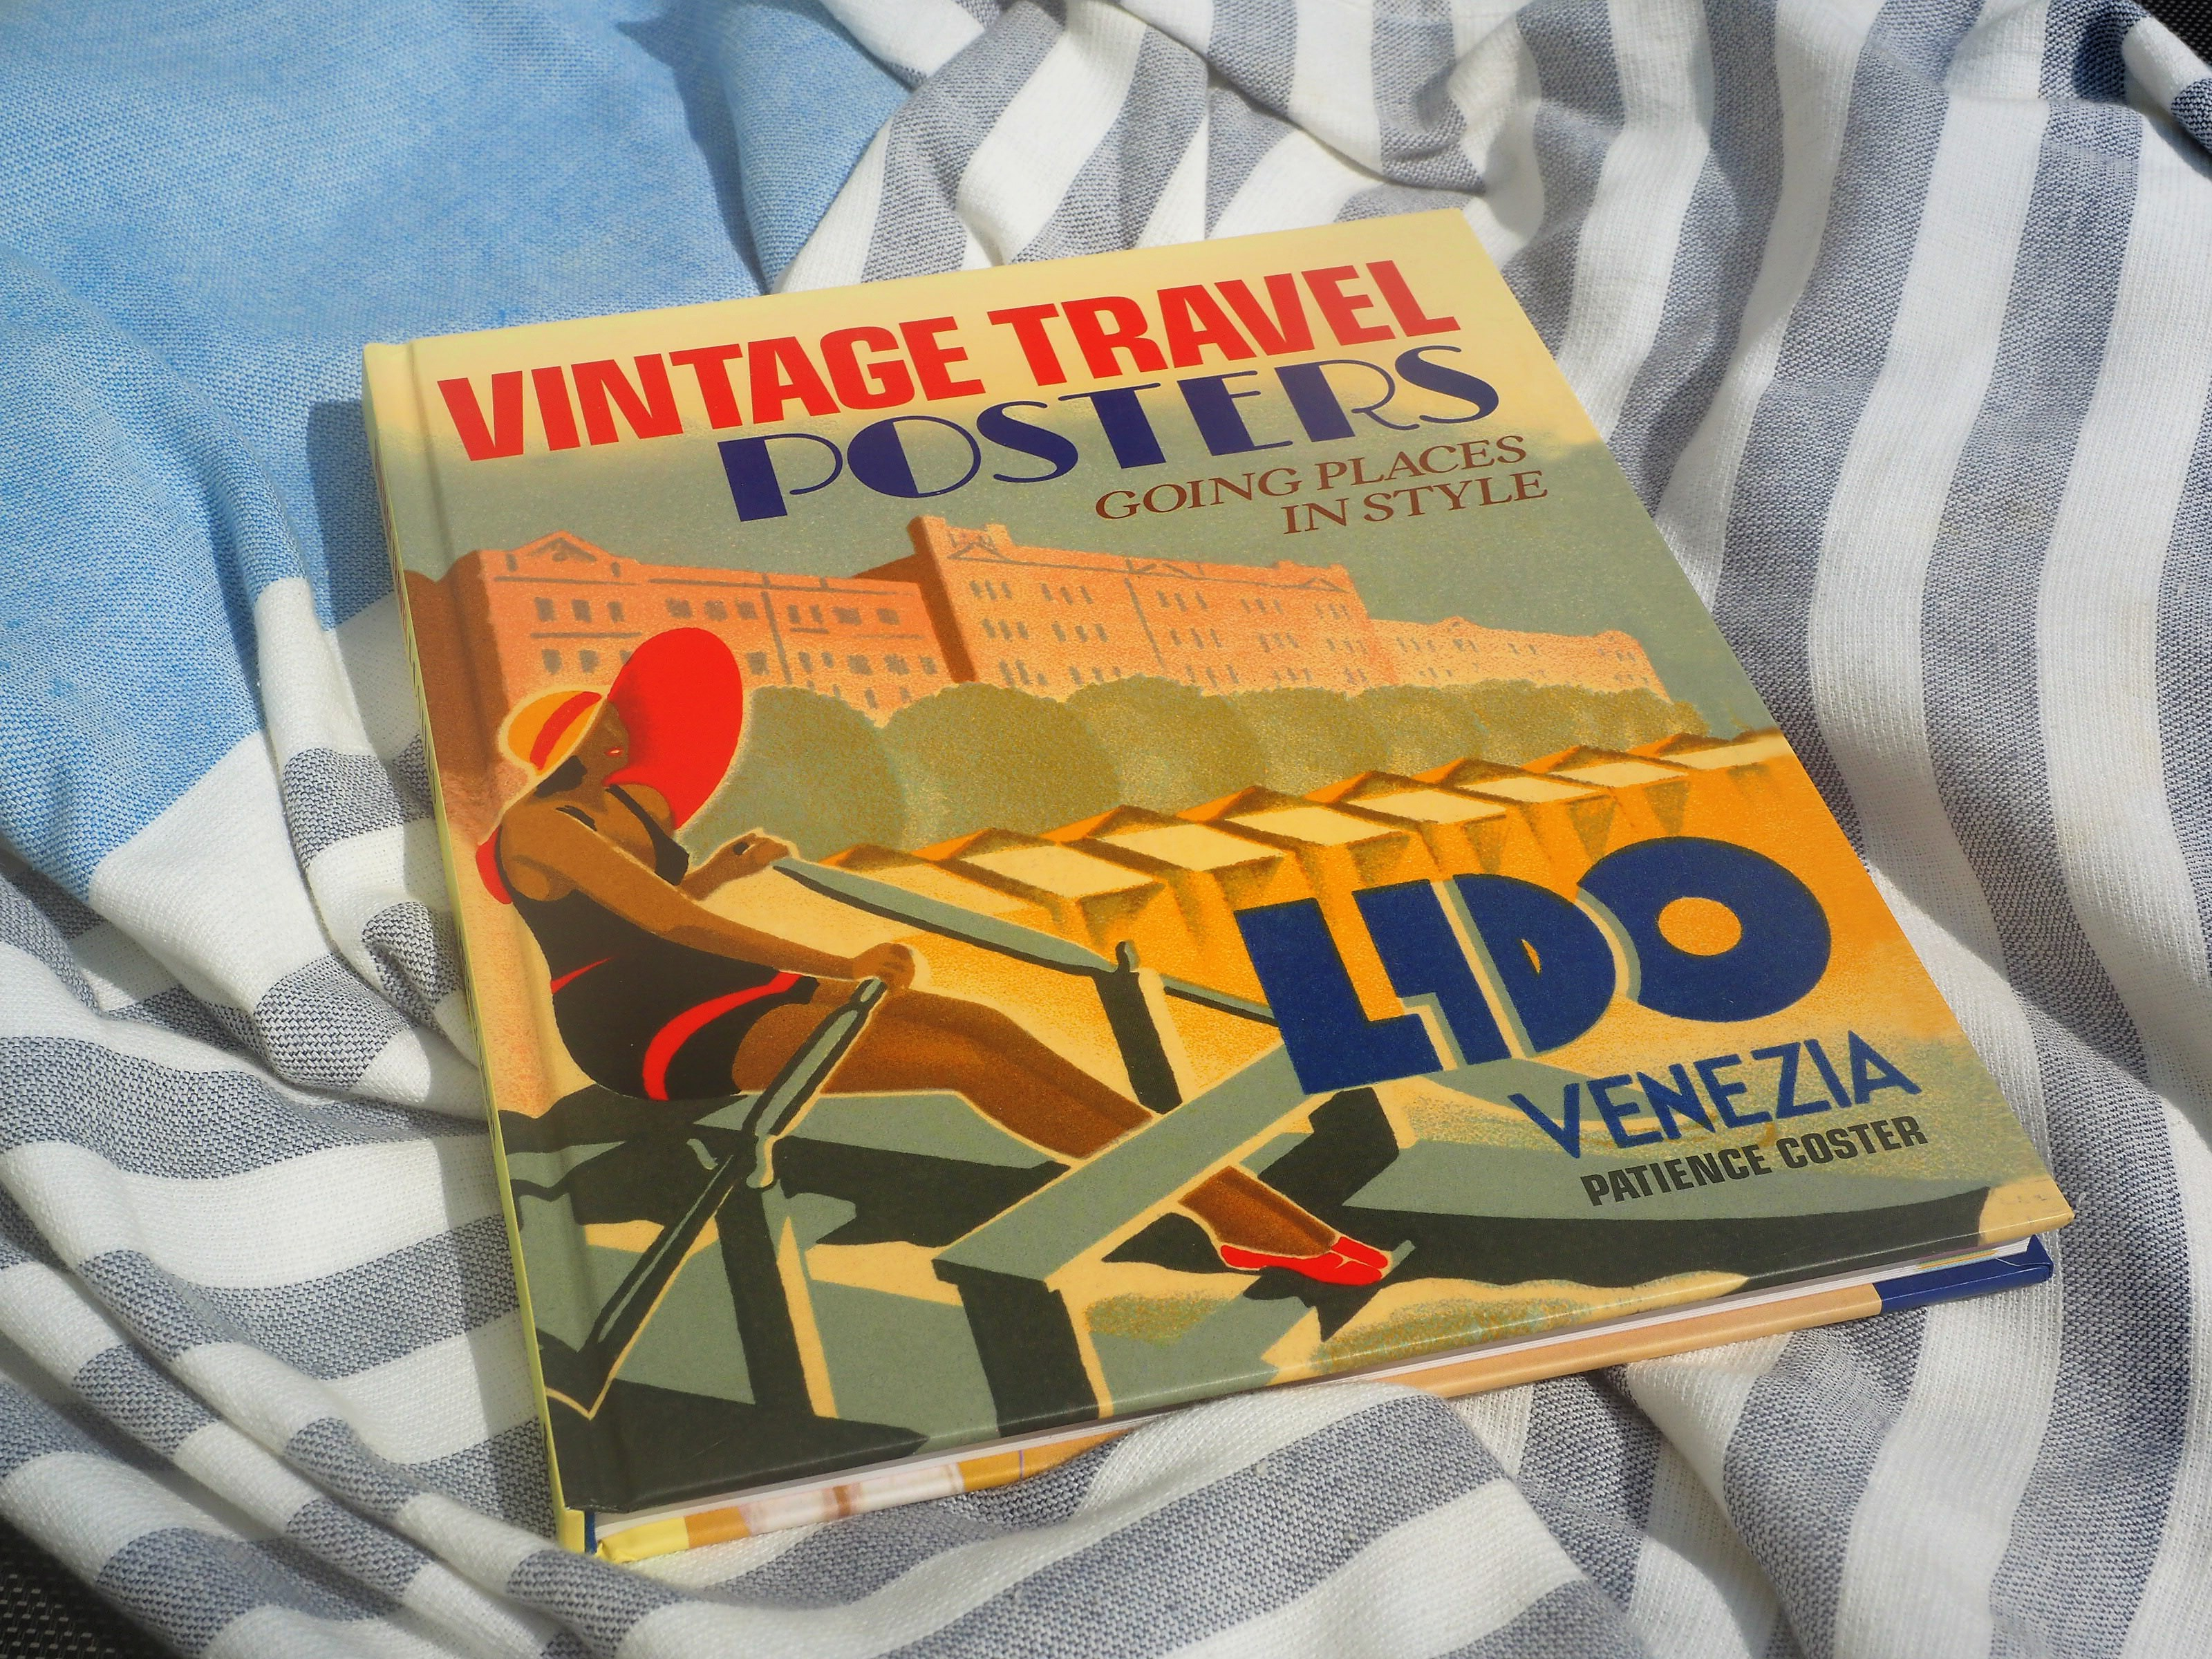 Vintage Travel Posters - Going Places In Style